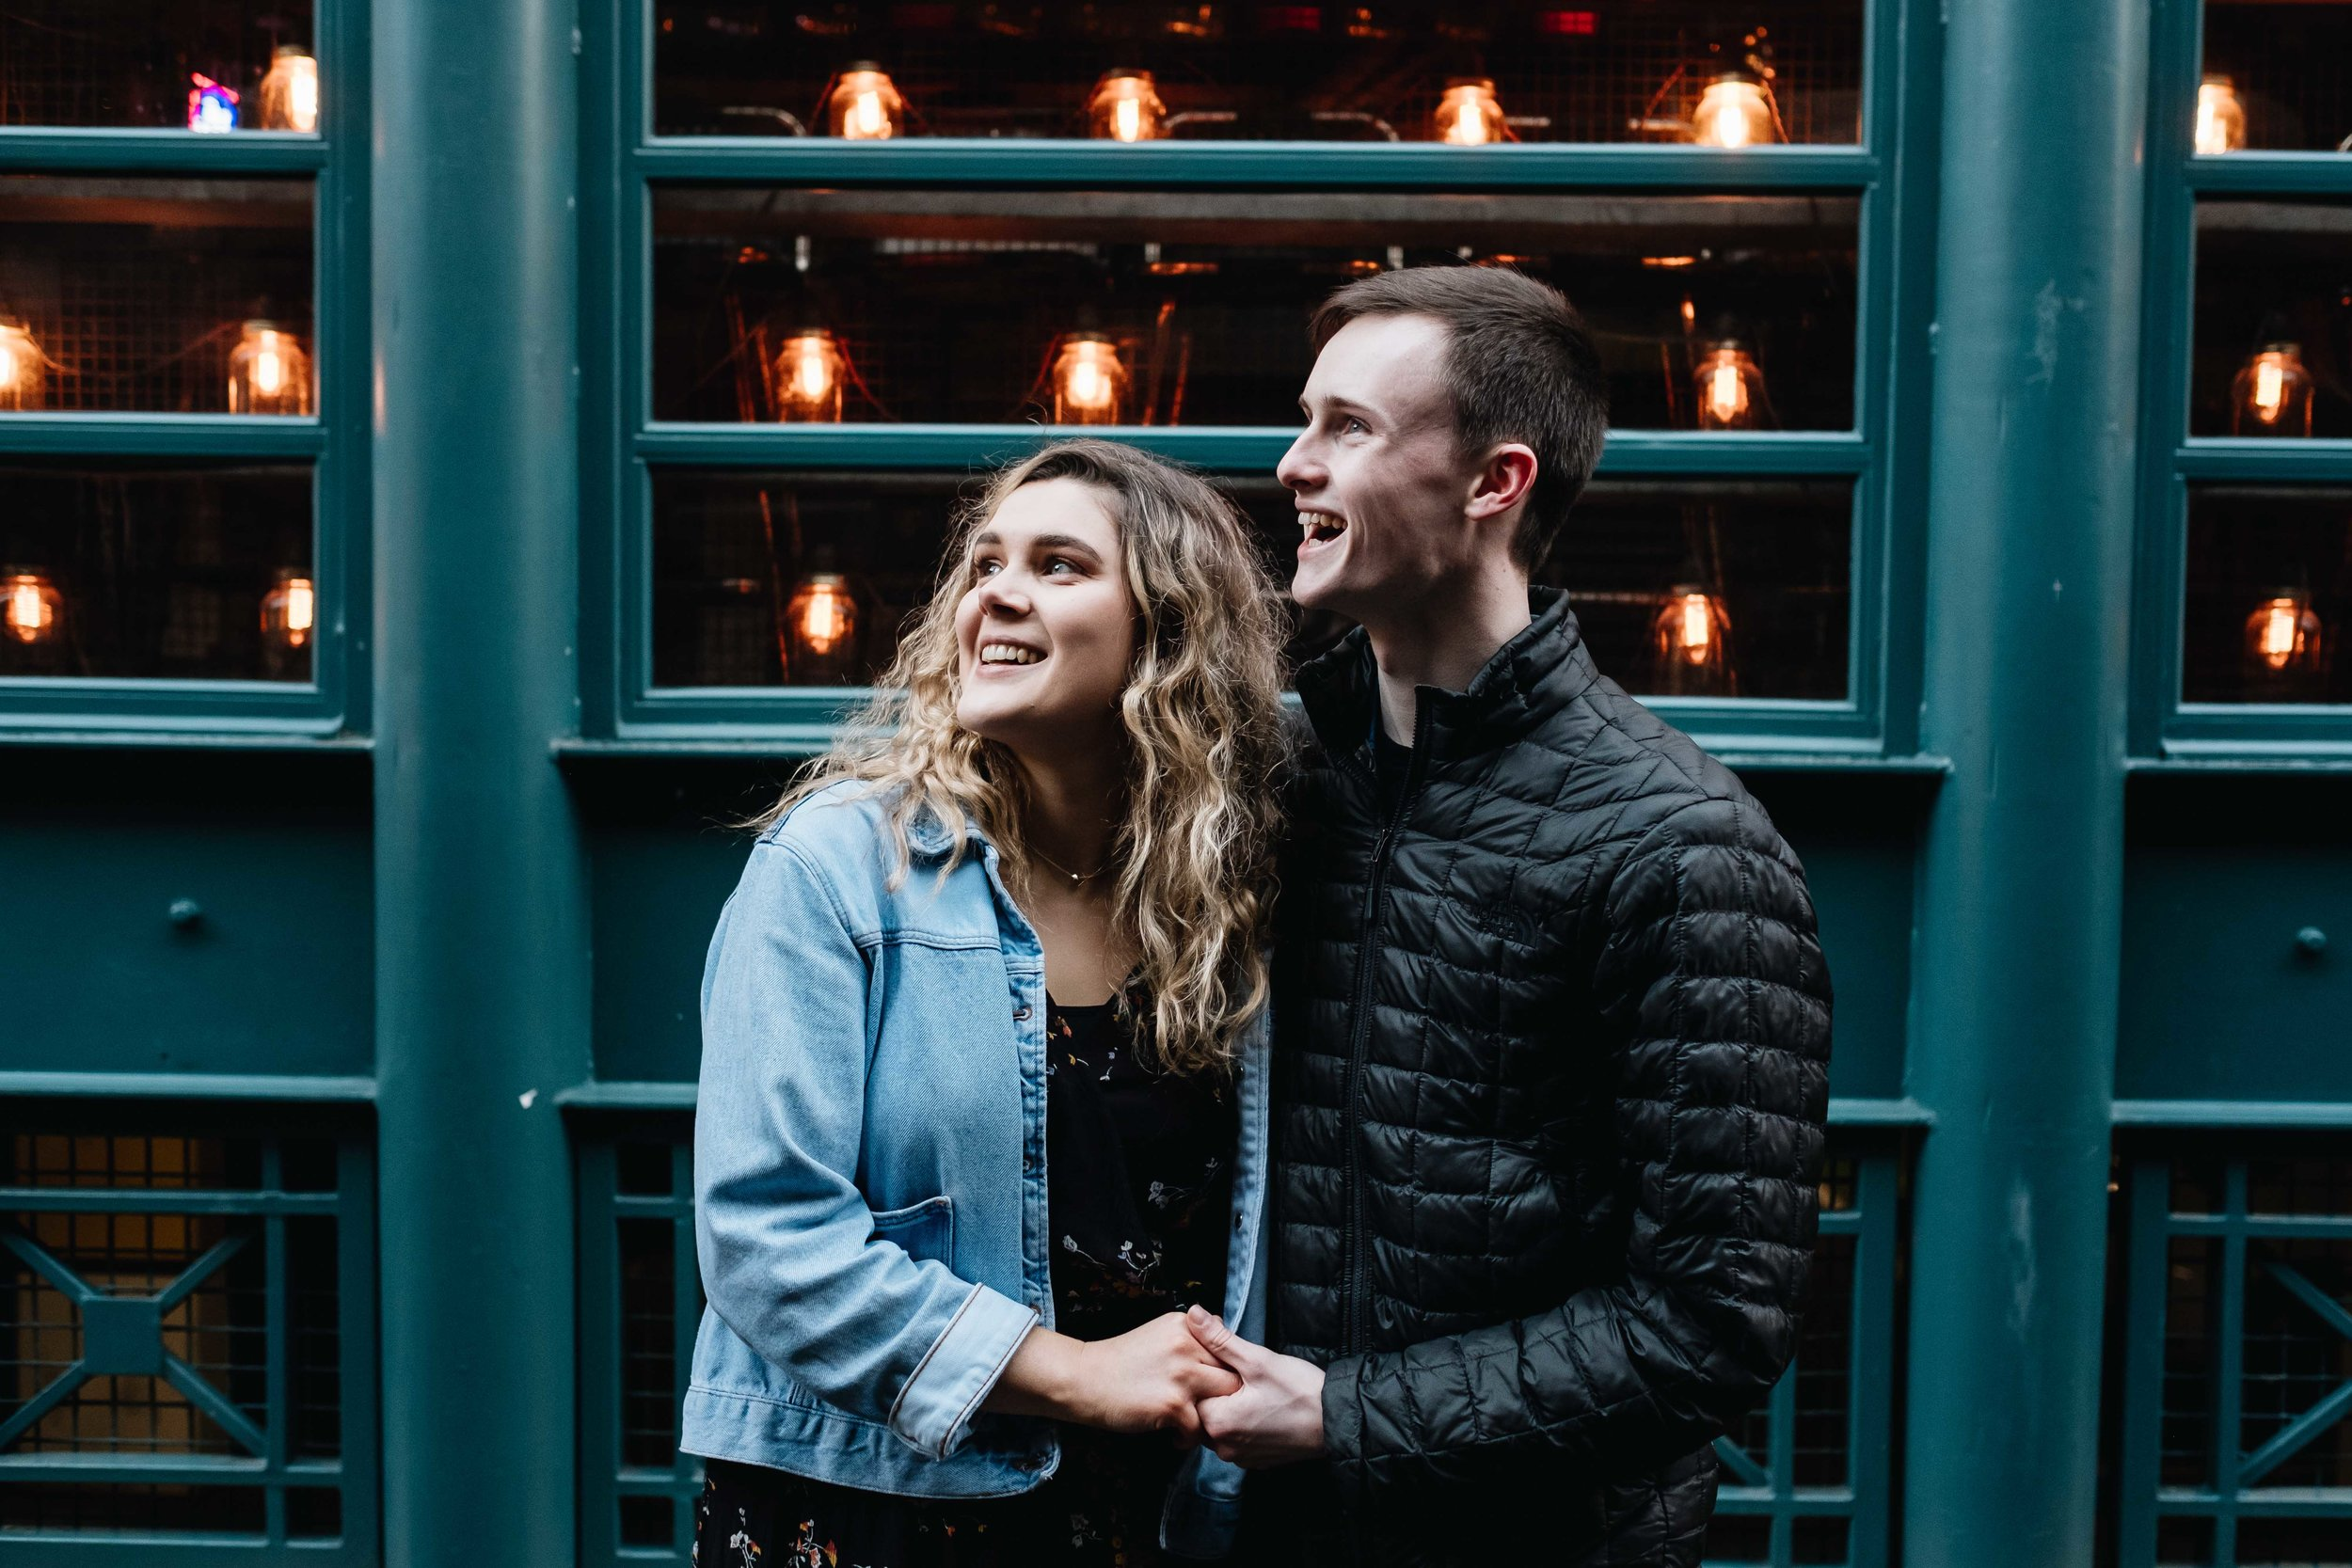 A happy smiing couple in an embrace with green wall and lights behind them.